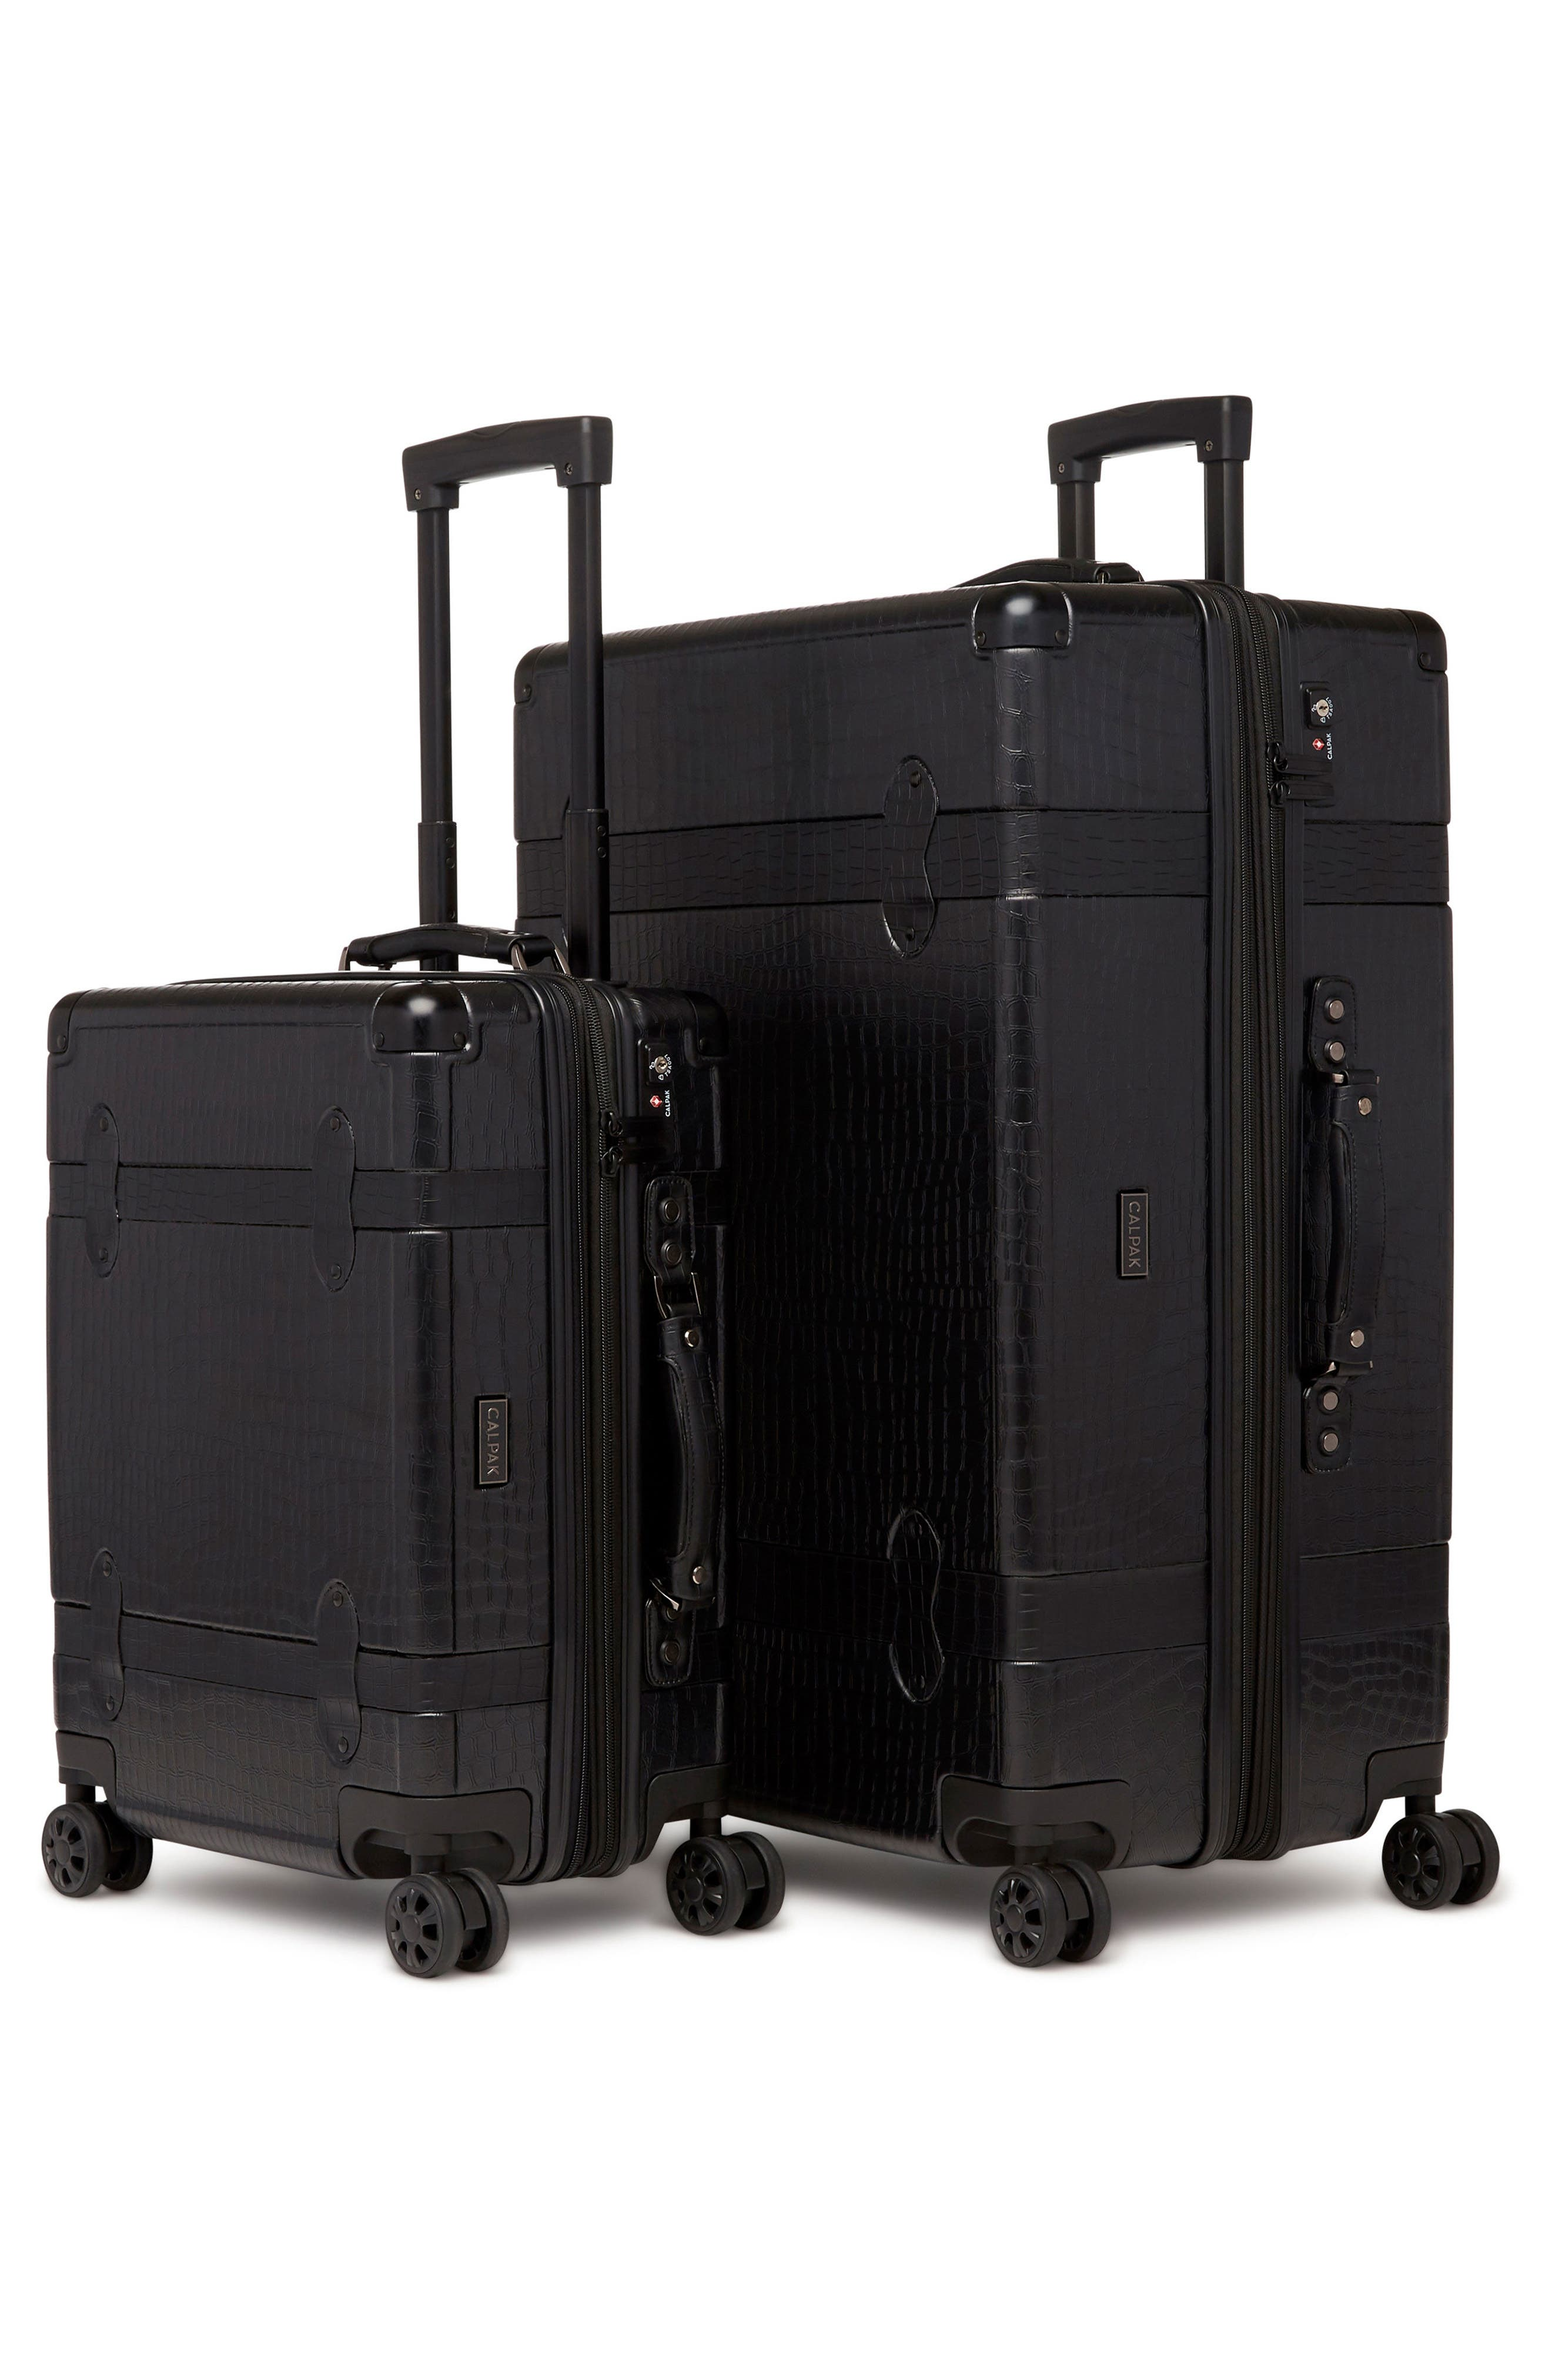 20-Inch & 28-Inch Trunk Rolling Luggage Set,                             Alternate thumbnail 2, color,                             NOIR